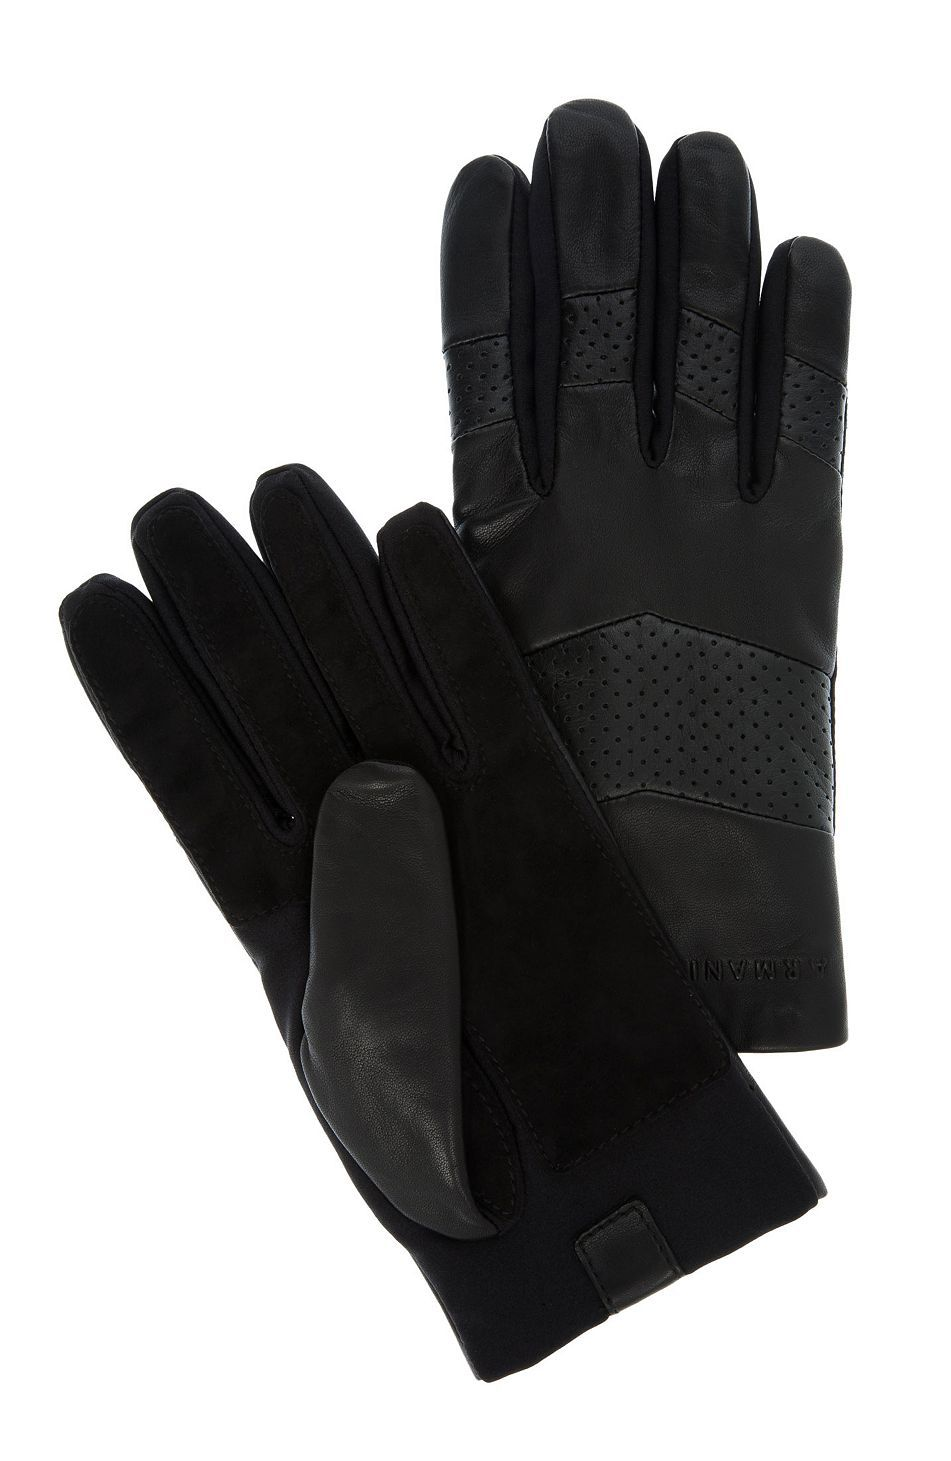 Armani exchange black leather gloves - Perforated Leather Glove Accessories Shop Mens Armani Exchange